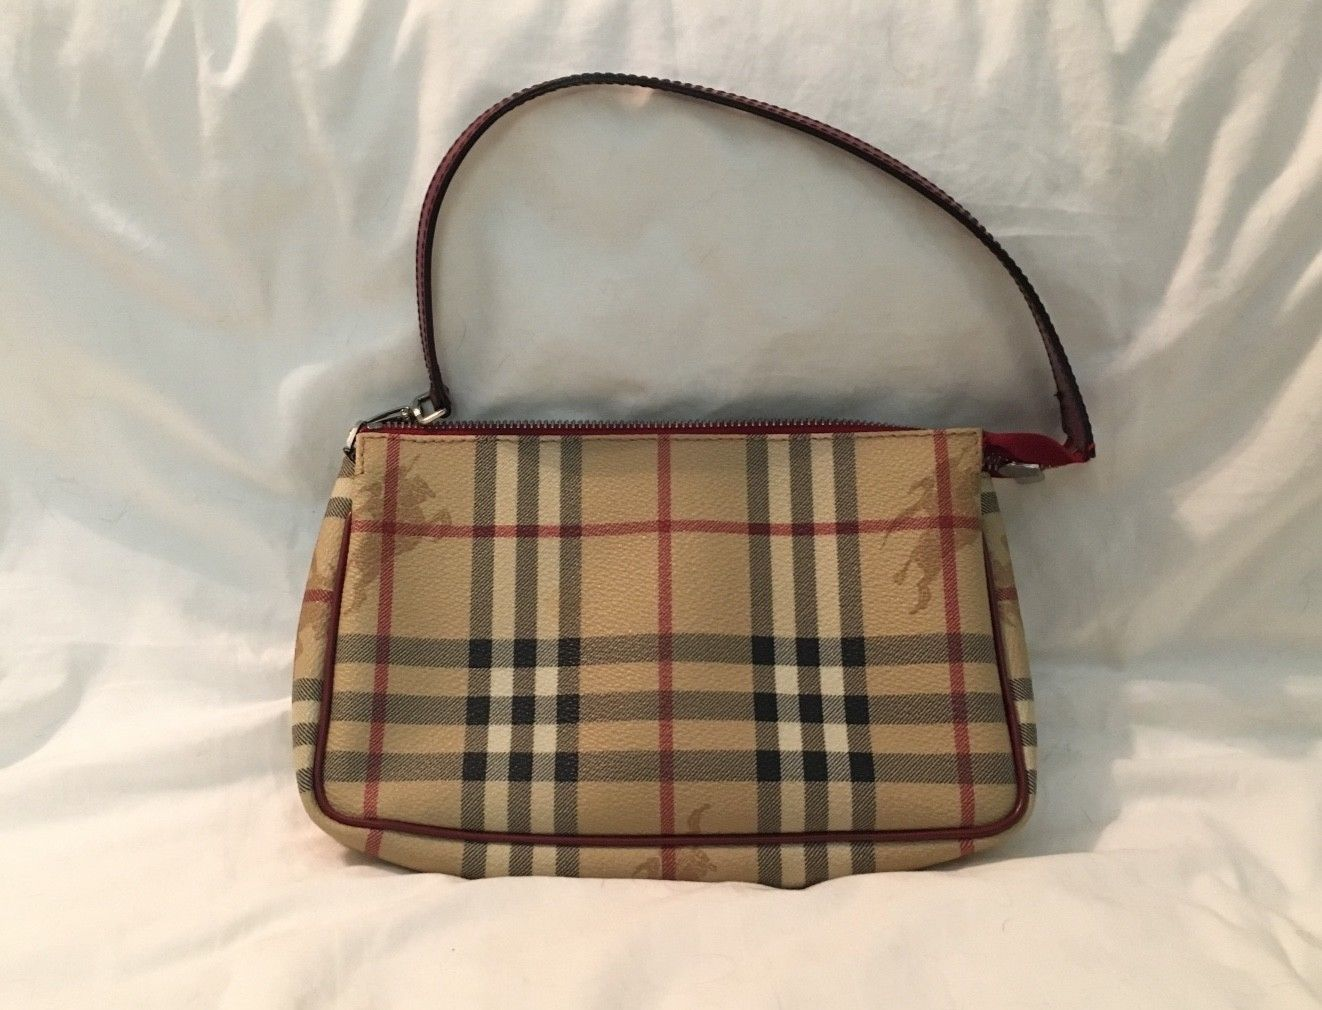 Burberry Handbag Used Beige Leather